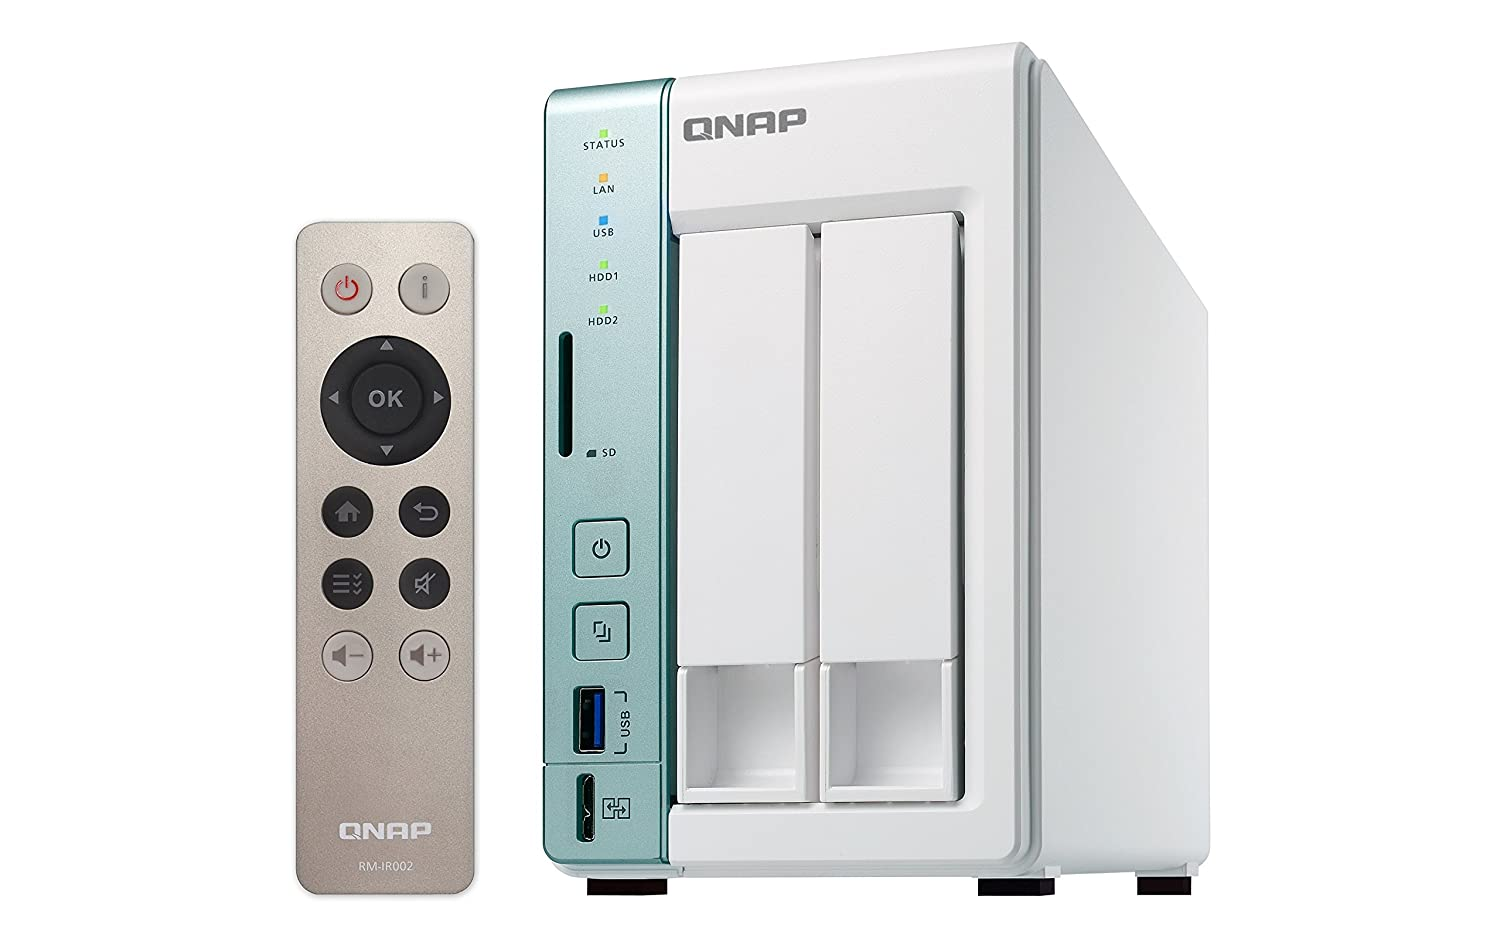 QNAP Turbo TS-251A - Dispositivo de Almacenamiento en Red NAS (Intel Celeron, 2 GB RAM, USB 3.0, SATA II/III, Gigabit), Blanco